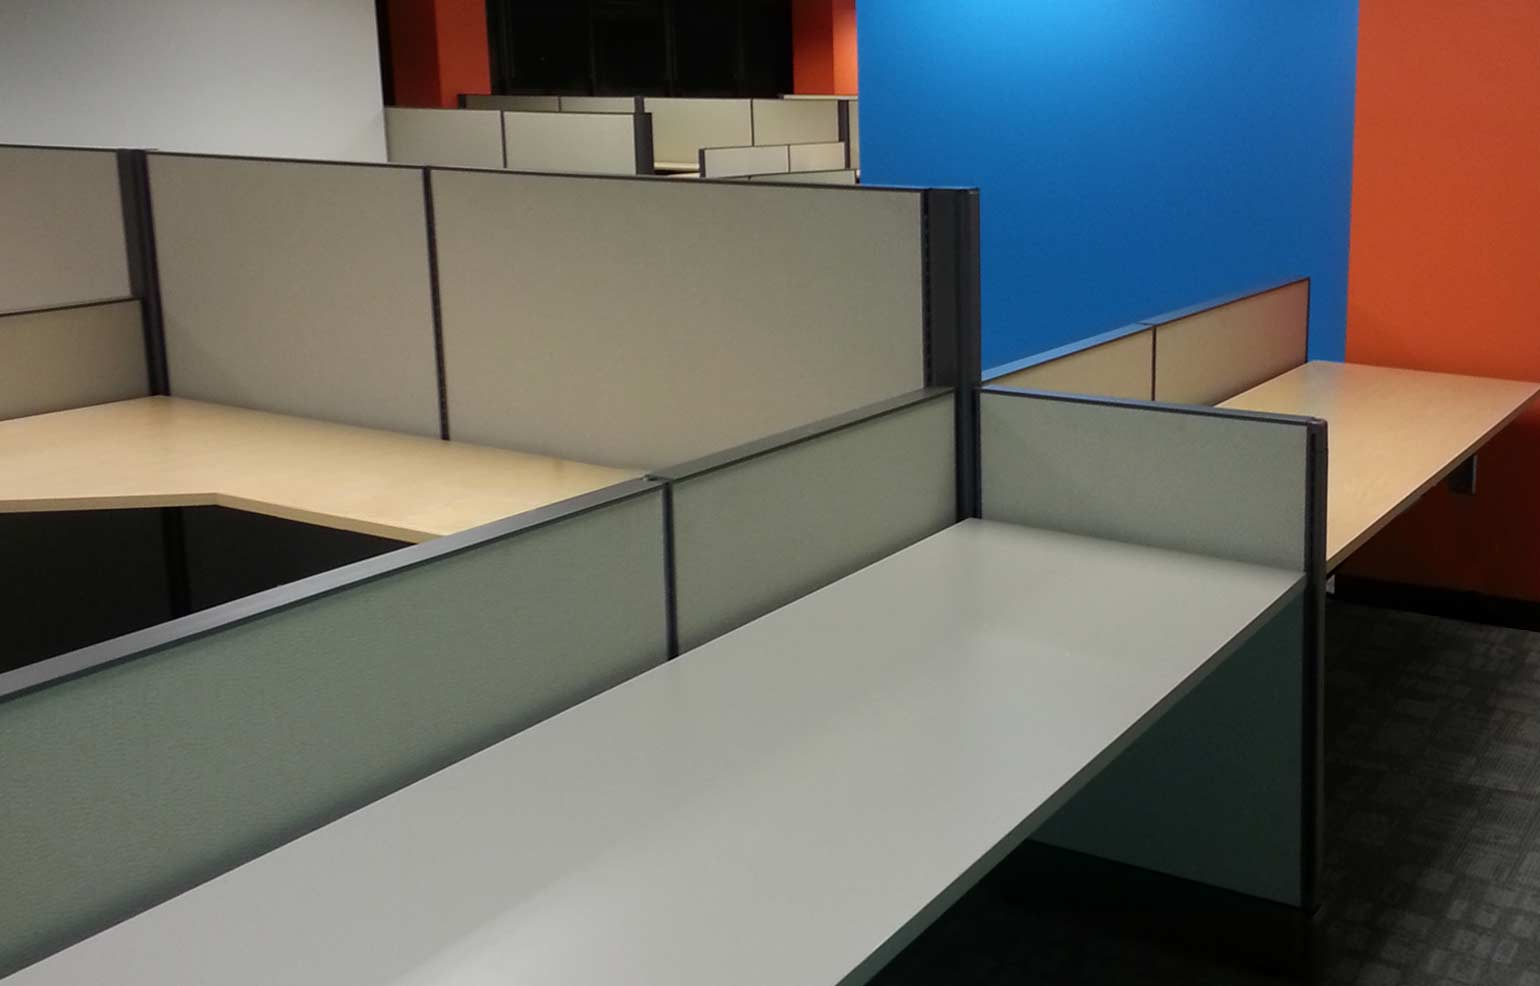 Devon Office Furniture's Office Cubicle Installations